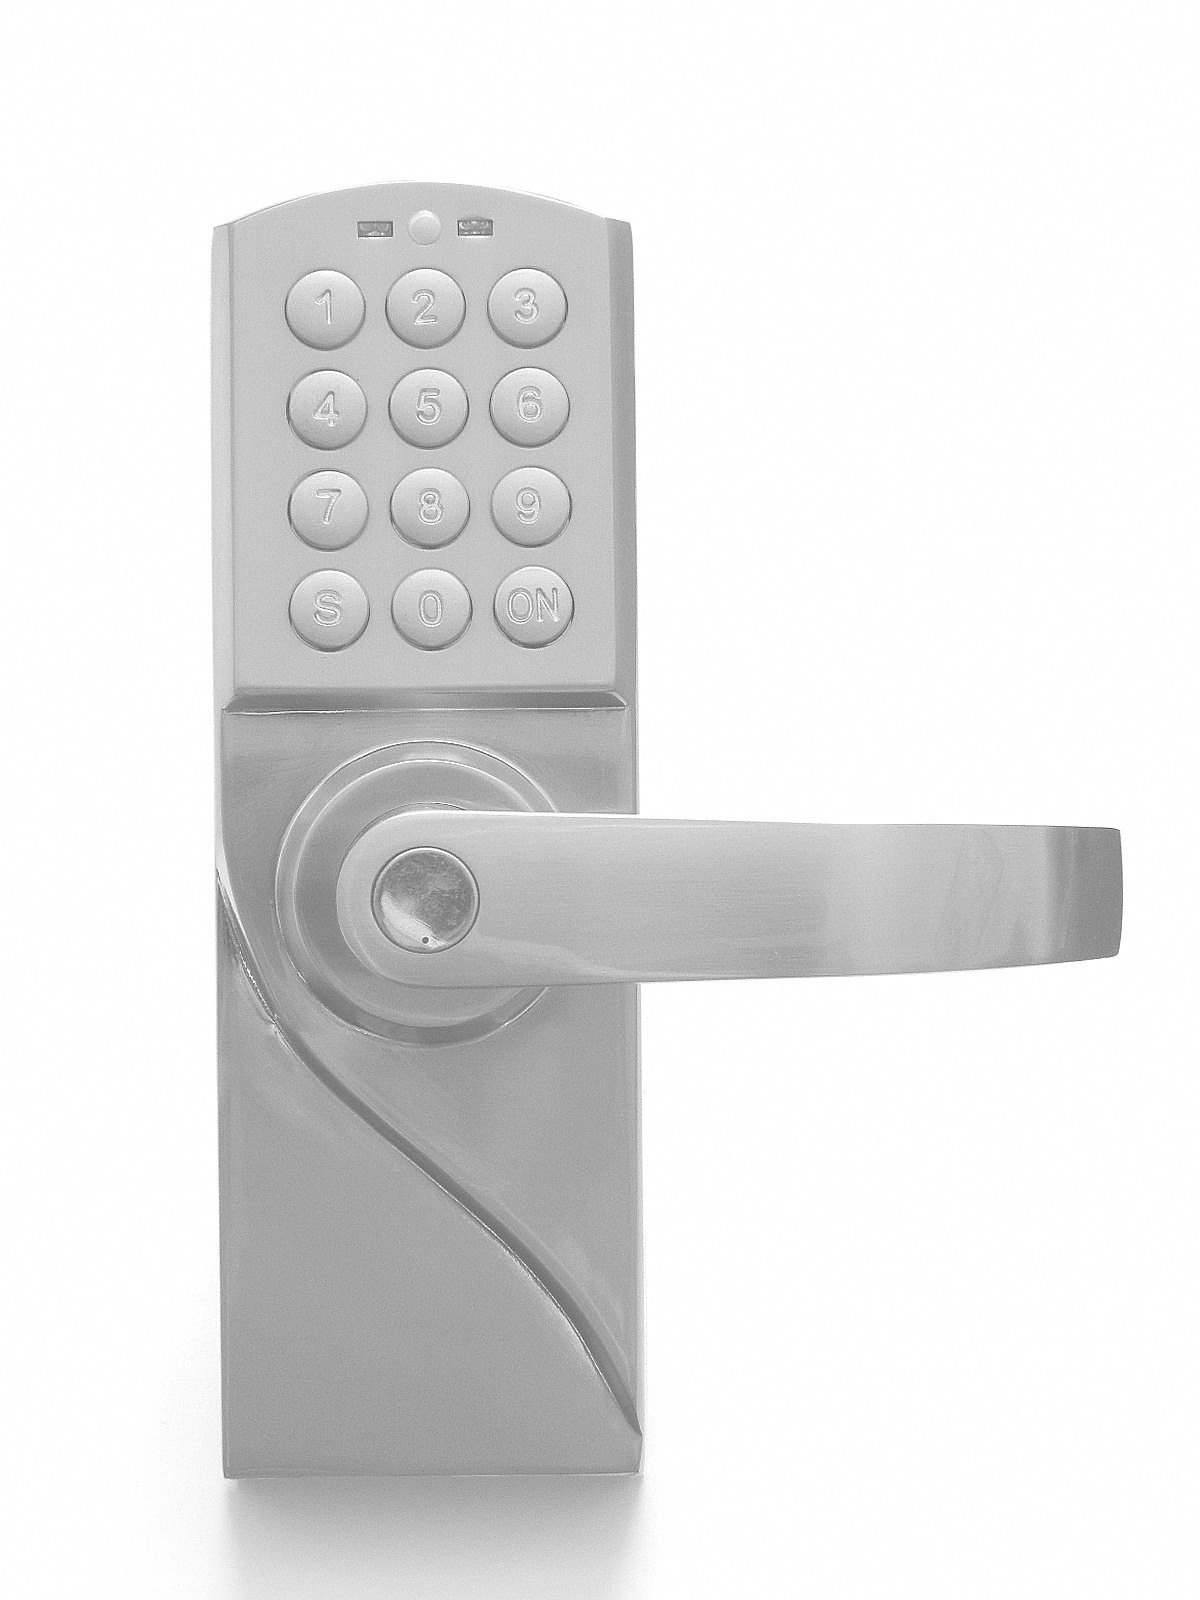 deadbolt smt smartkey cp p kwikset smartcode cylinder electronic nickel lock deadbolts single keyless door scr featuring satin